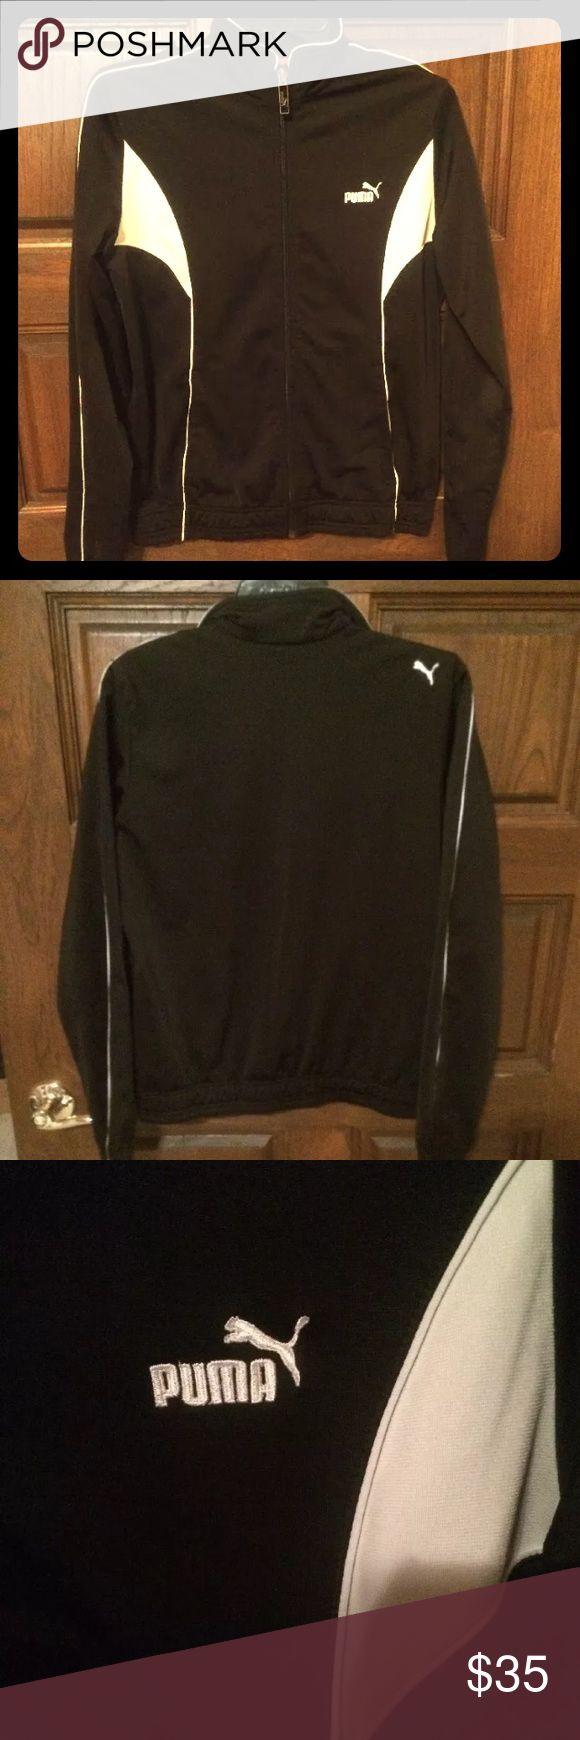 Black and White Puma Zip Up Track Style Jacket Like new black puma zip up track jacket. In excellent condition. Only worn a couple times. No stains, rips or holes. Women's large.  From a pet free and smoke free home. Puma Jackets & Coats Blazers